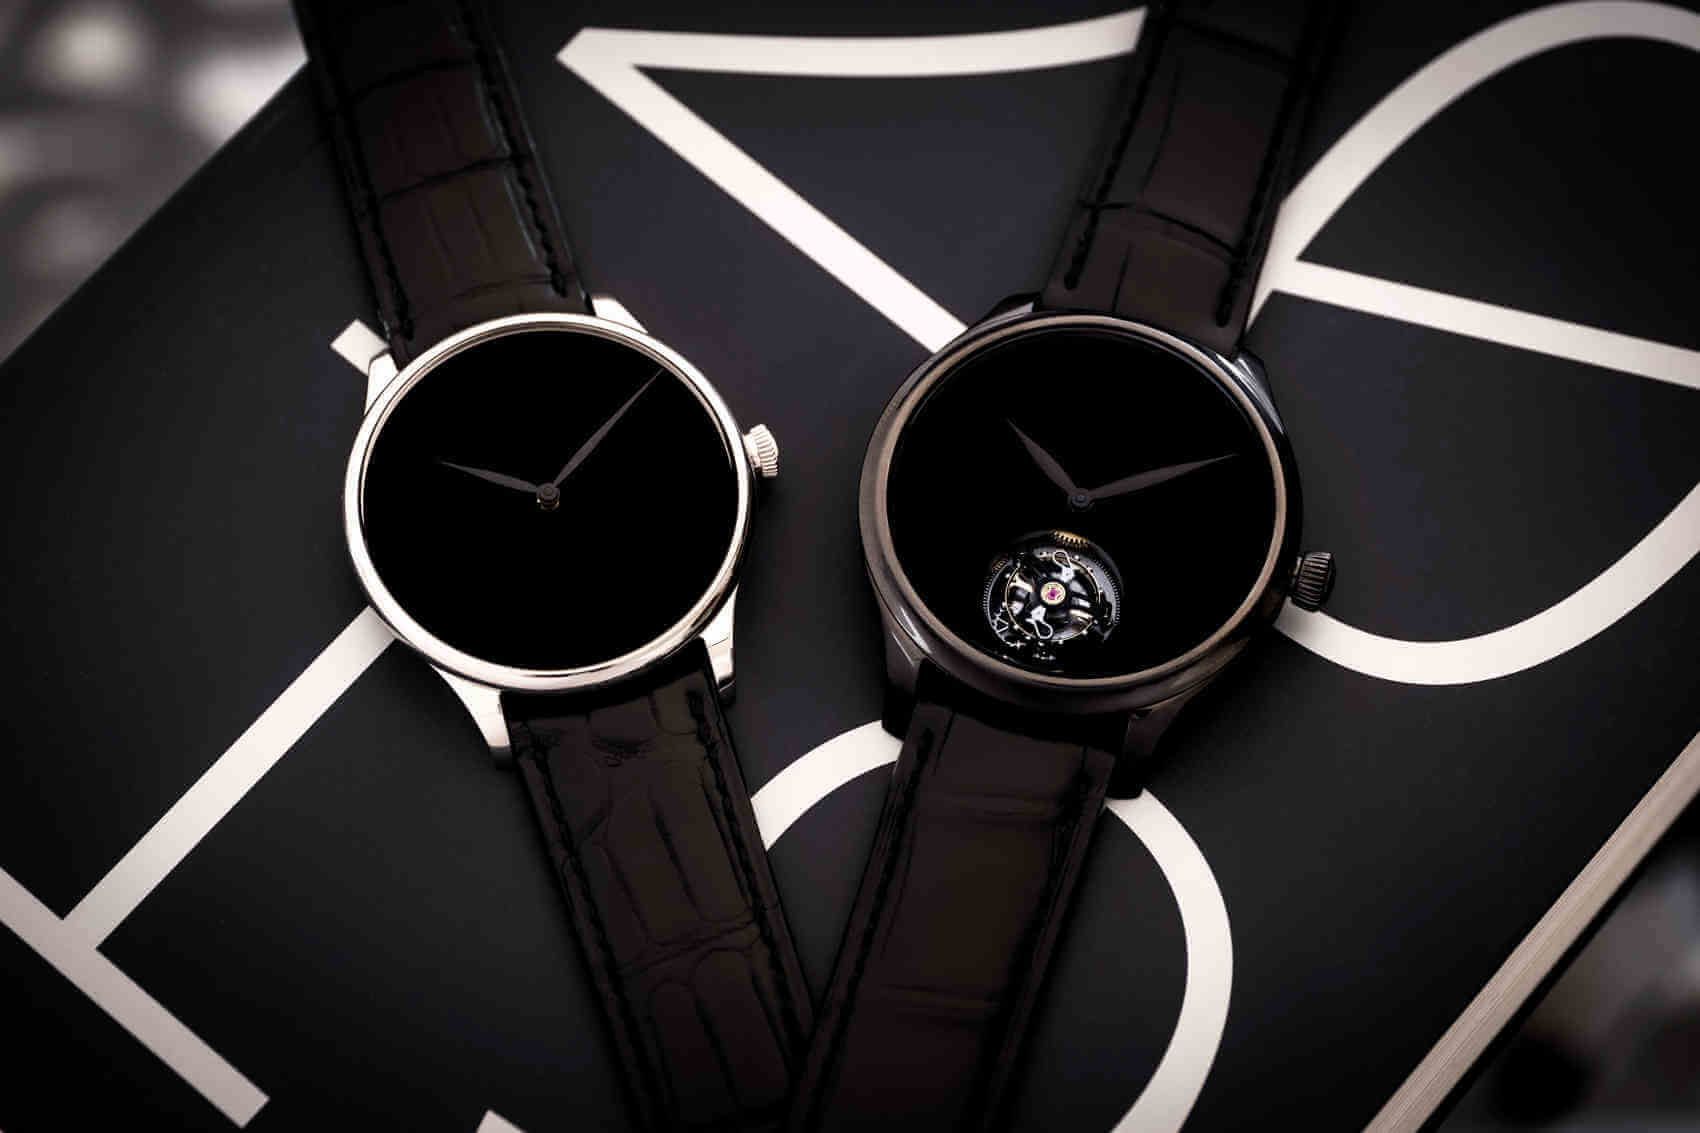 Venturer Vantablack Black Hands_2327-0222_Endeavour Tourbillon Vantablack Black Hands_1804-1206_Lifestyle